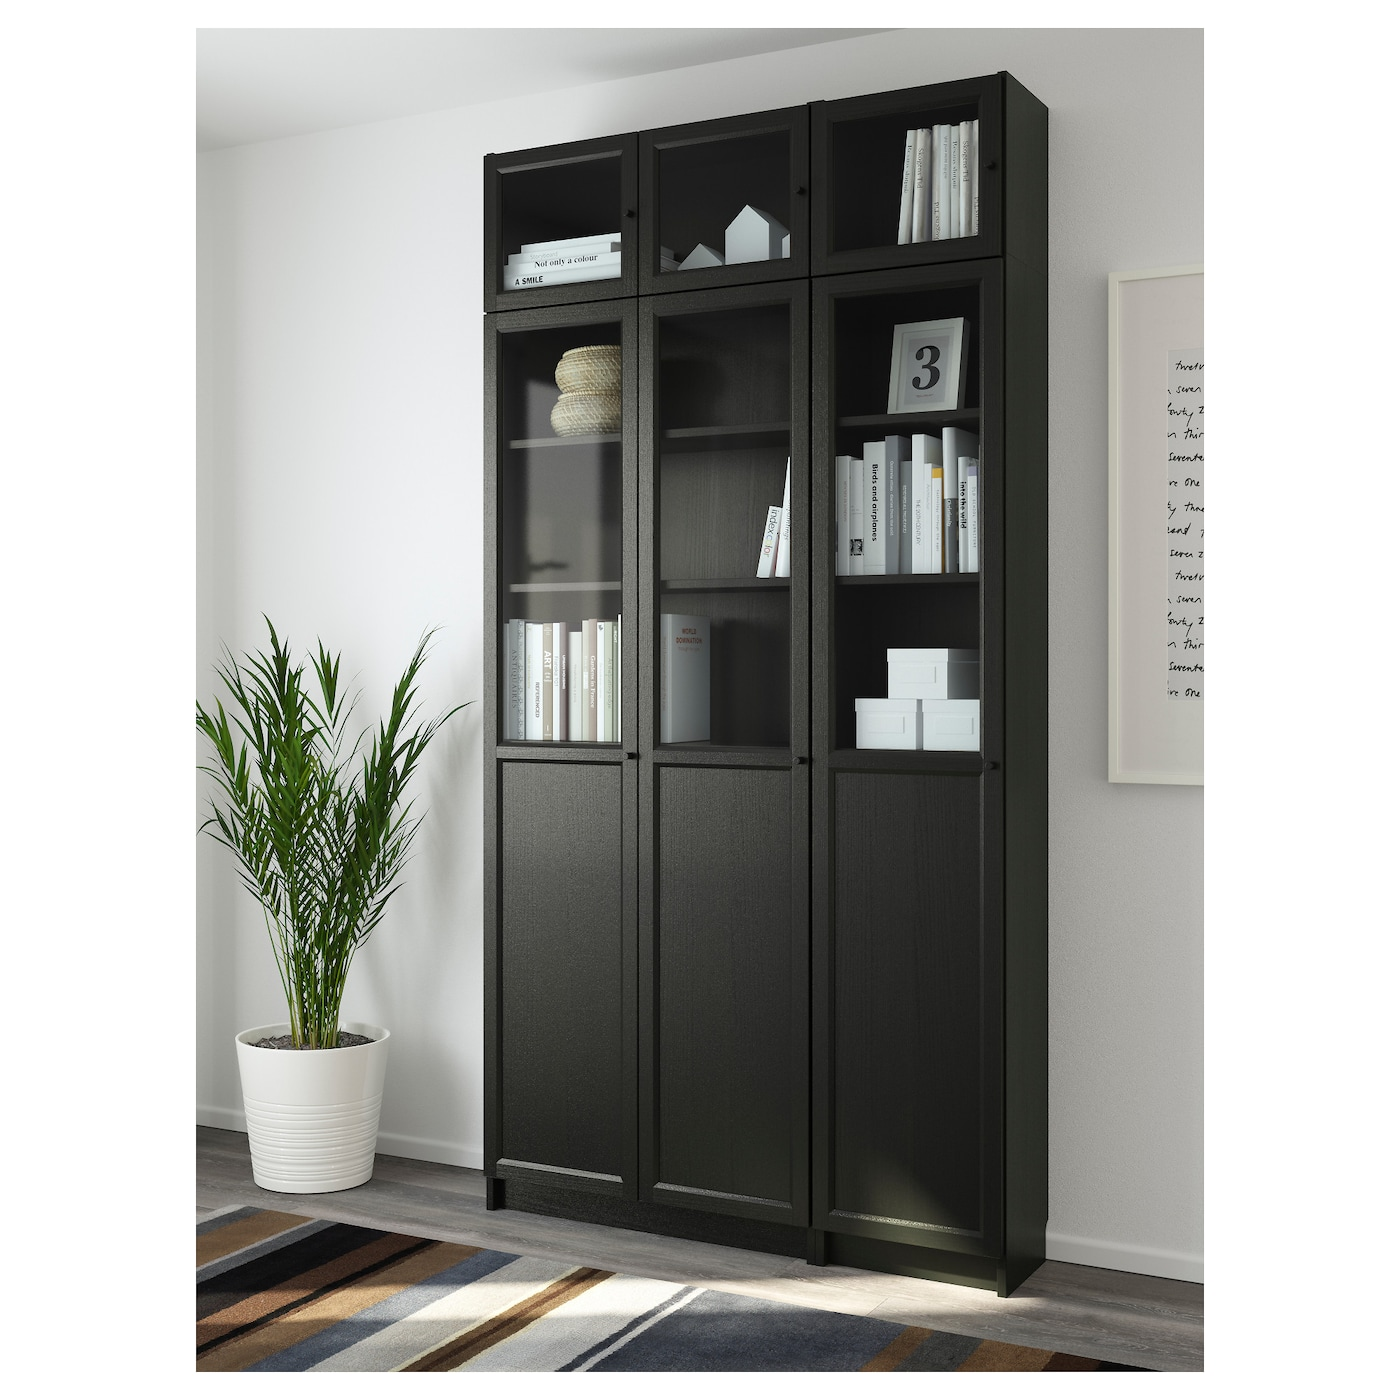 billy oxberg bookcase black brown glass 120x237x30 cm ikea. Black Bedroom Furniture Sets. Home Design Ideas